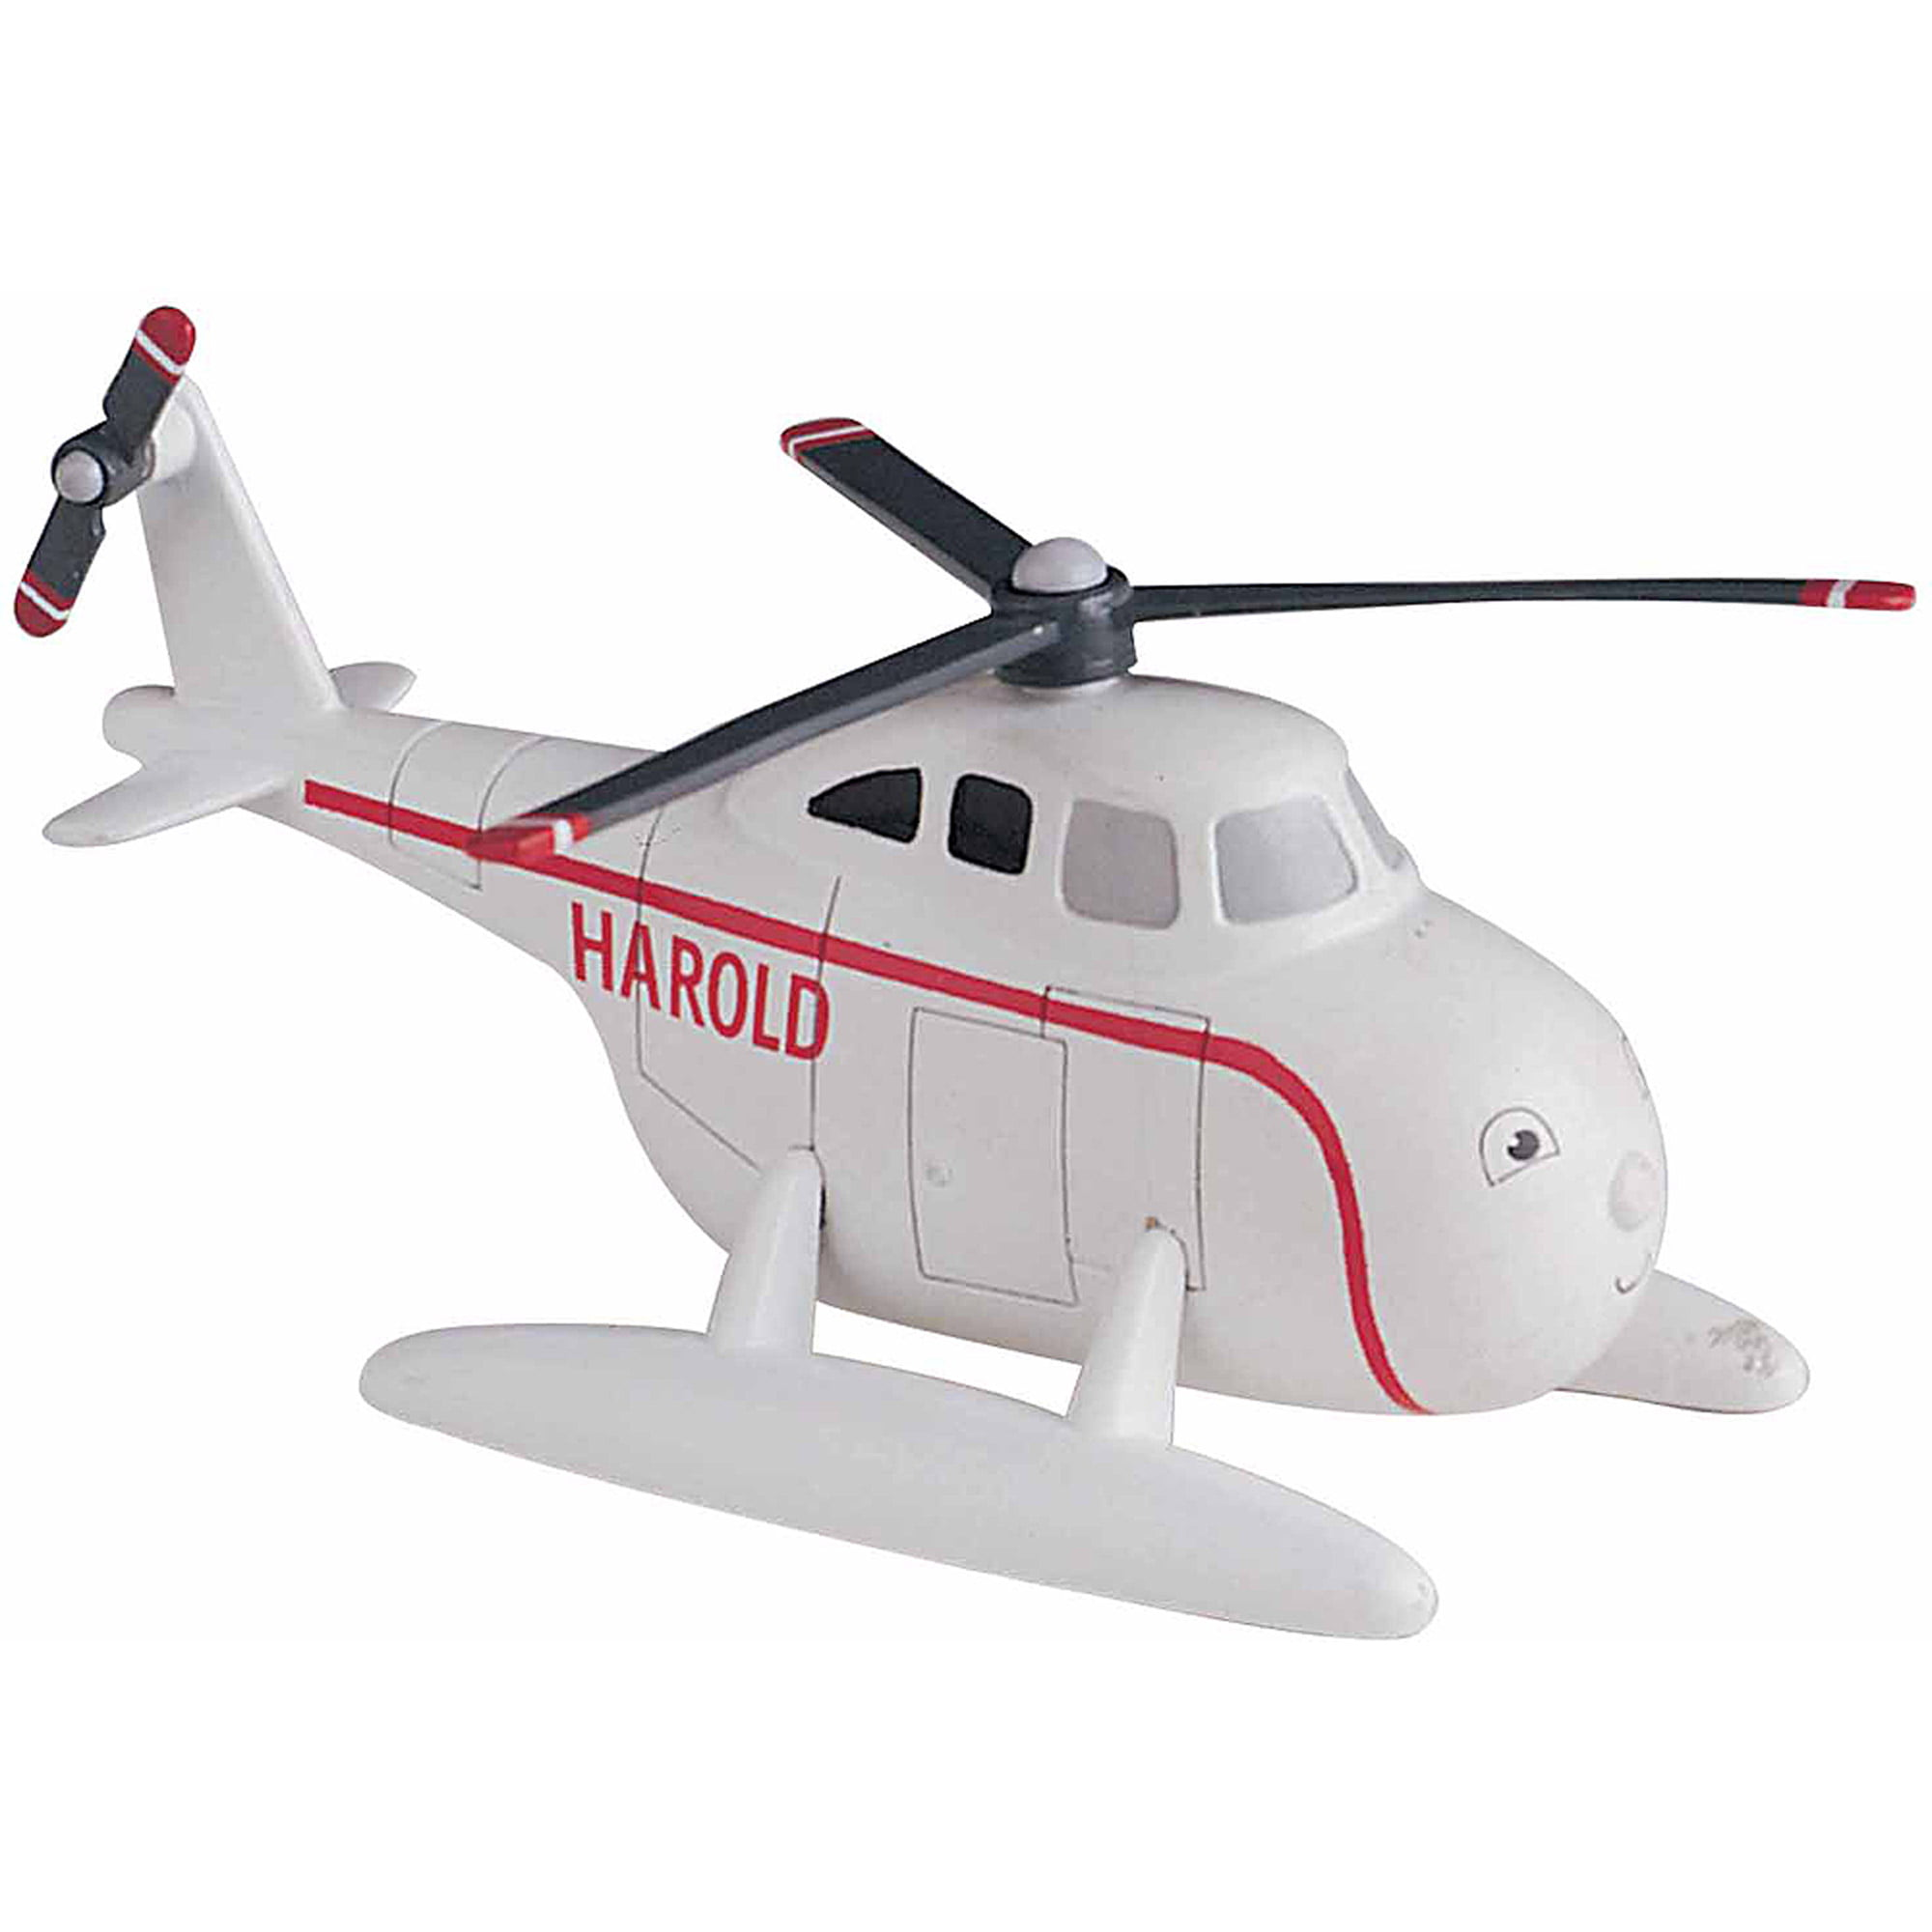 Bachmann Trains Thomas and Friends Harold The Helicopter Scenery Item, HO Scale by Bachmann